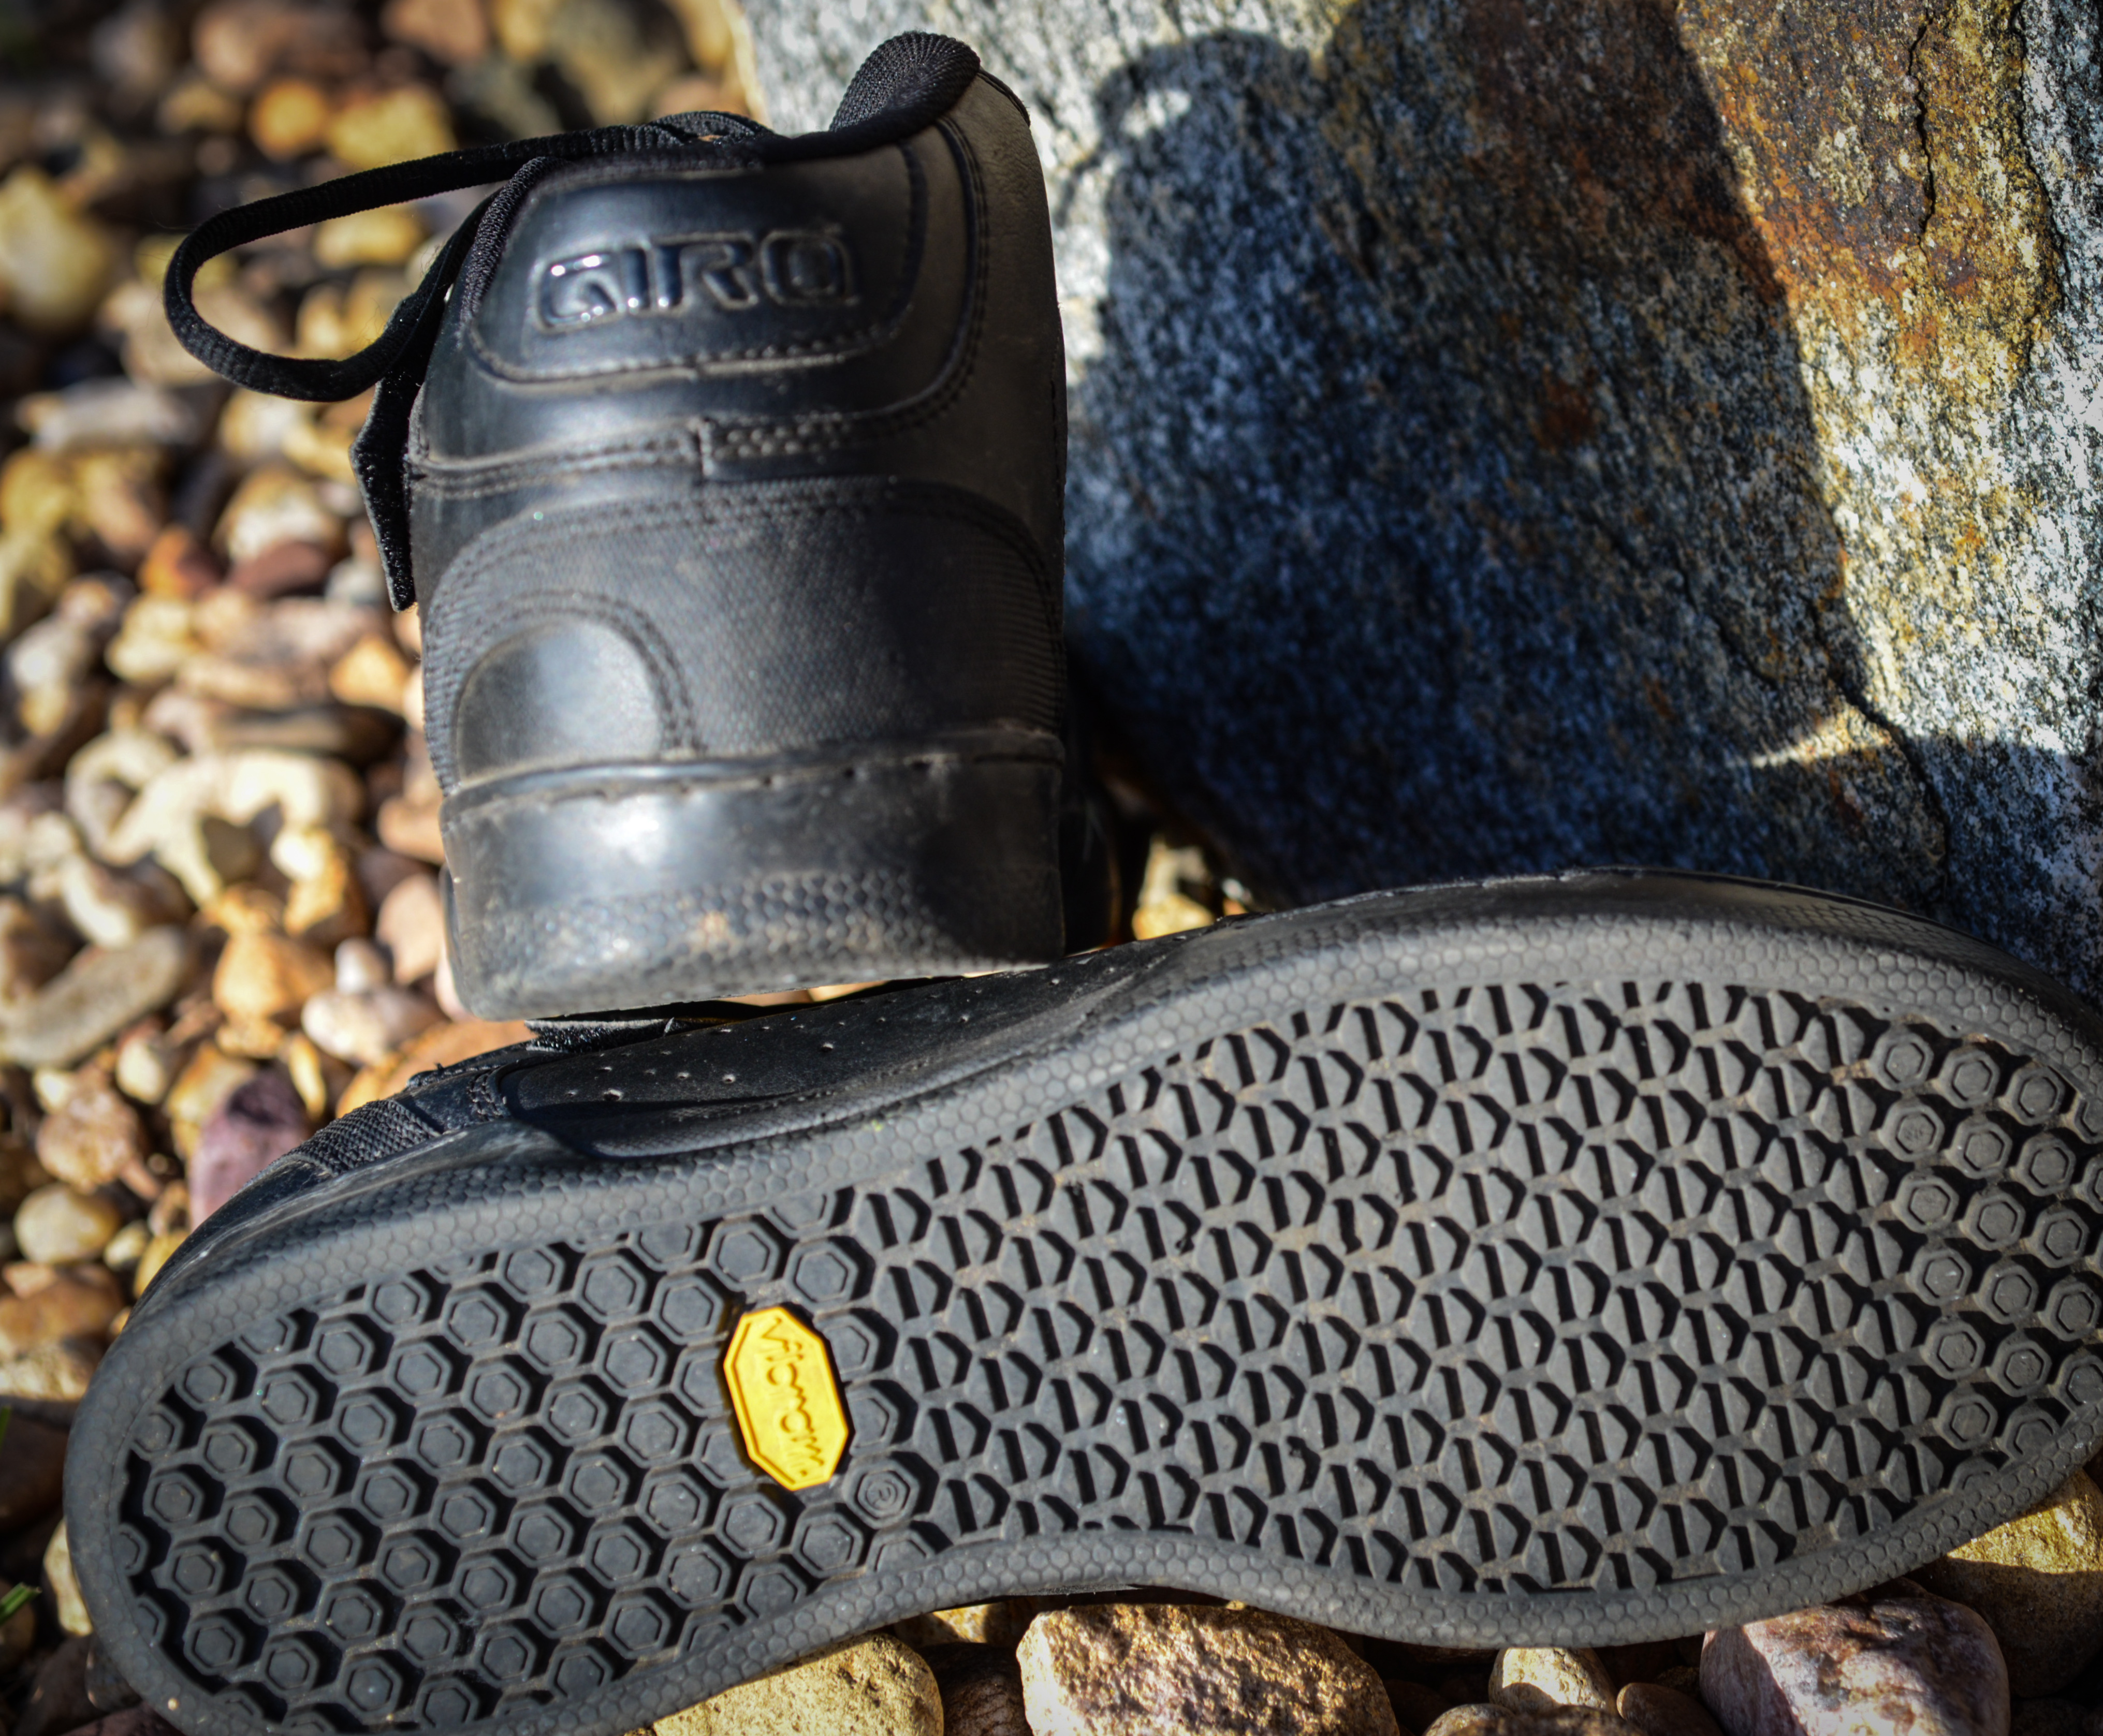 review giro jacket mid flat pedal mountain bike shoes. Black Bedroom Furniture Sets. Home Design Ideas